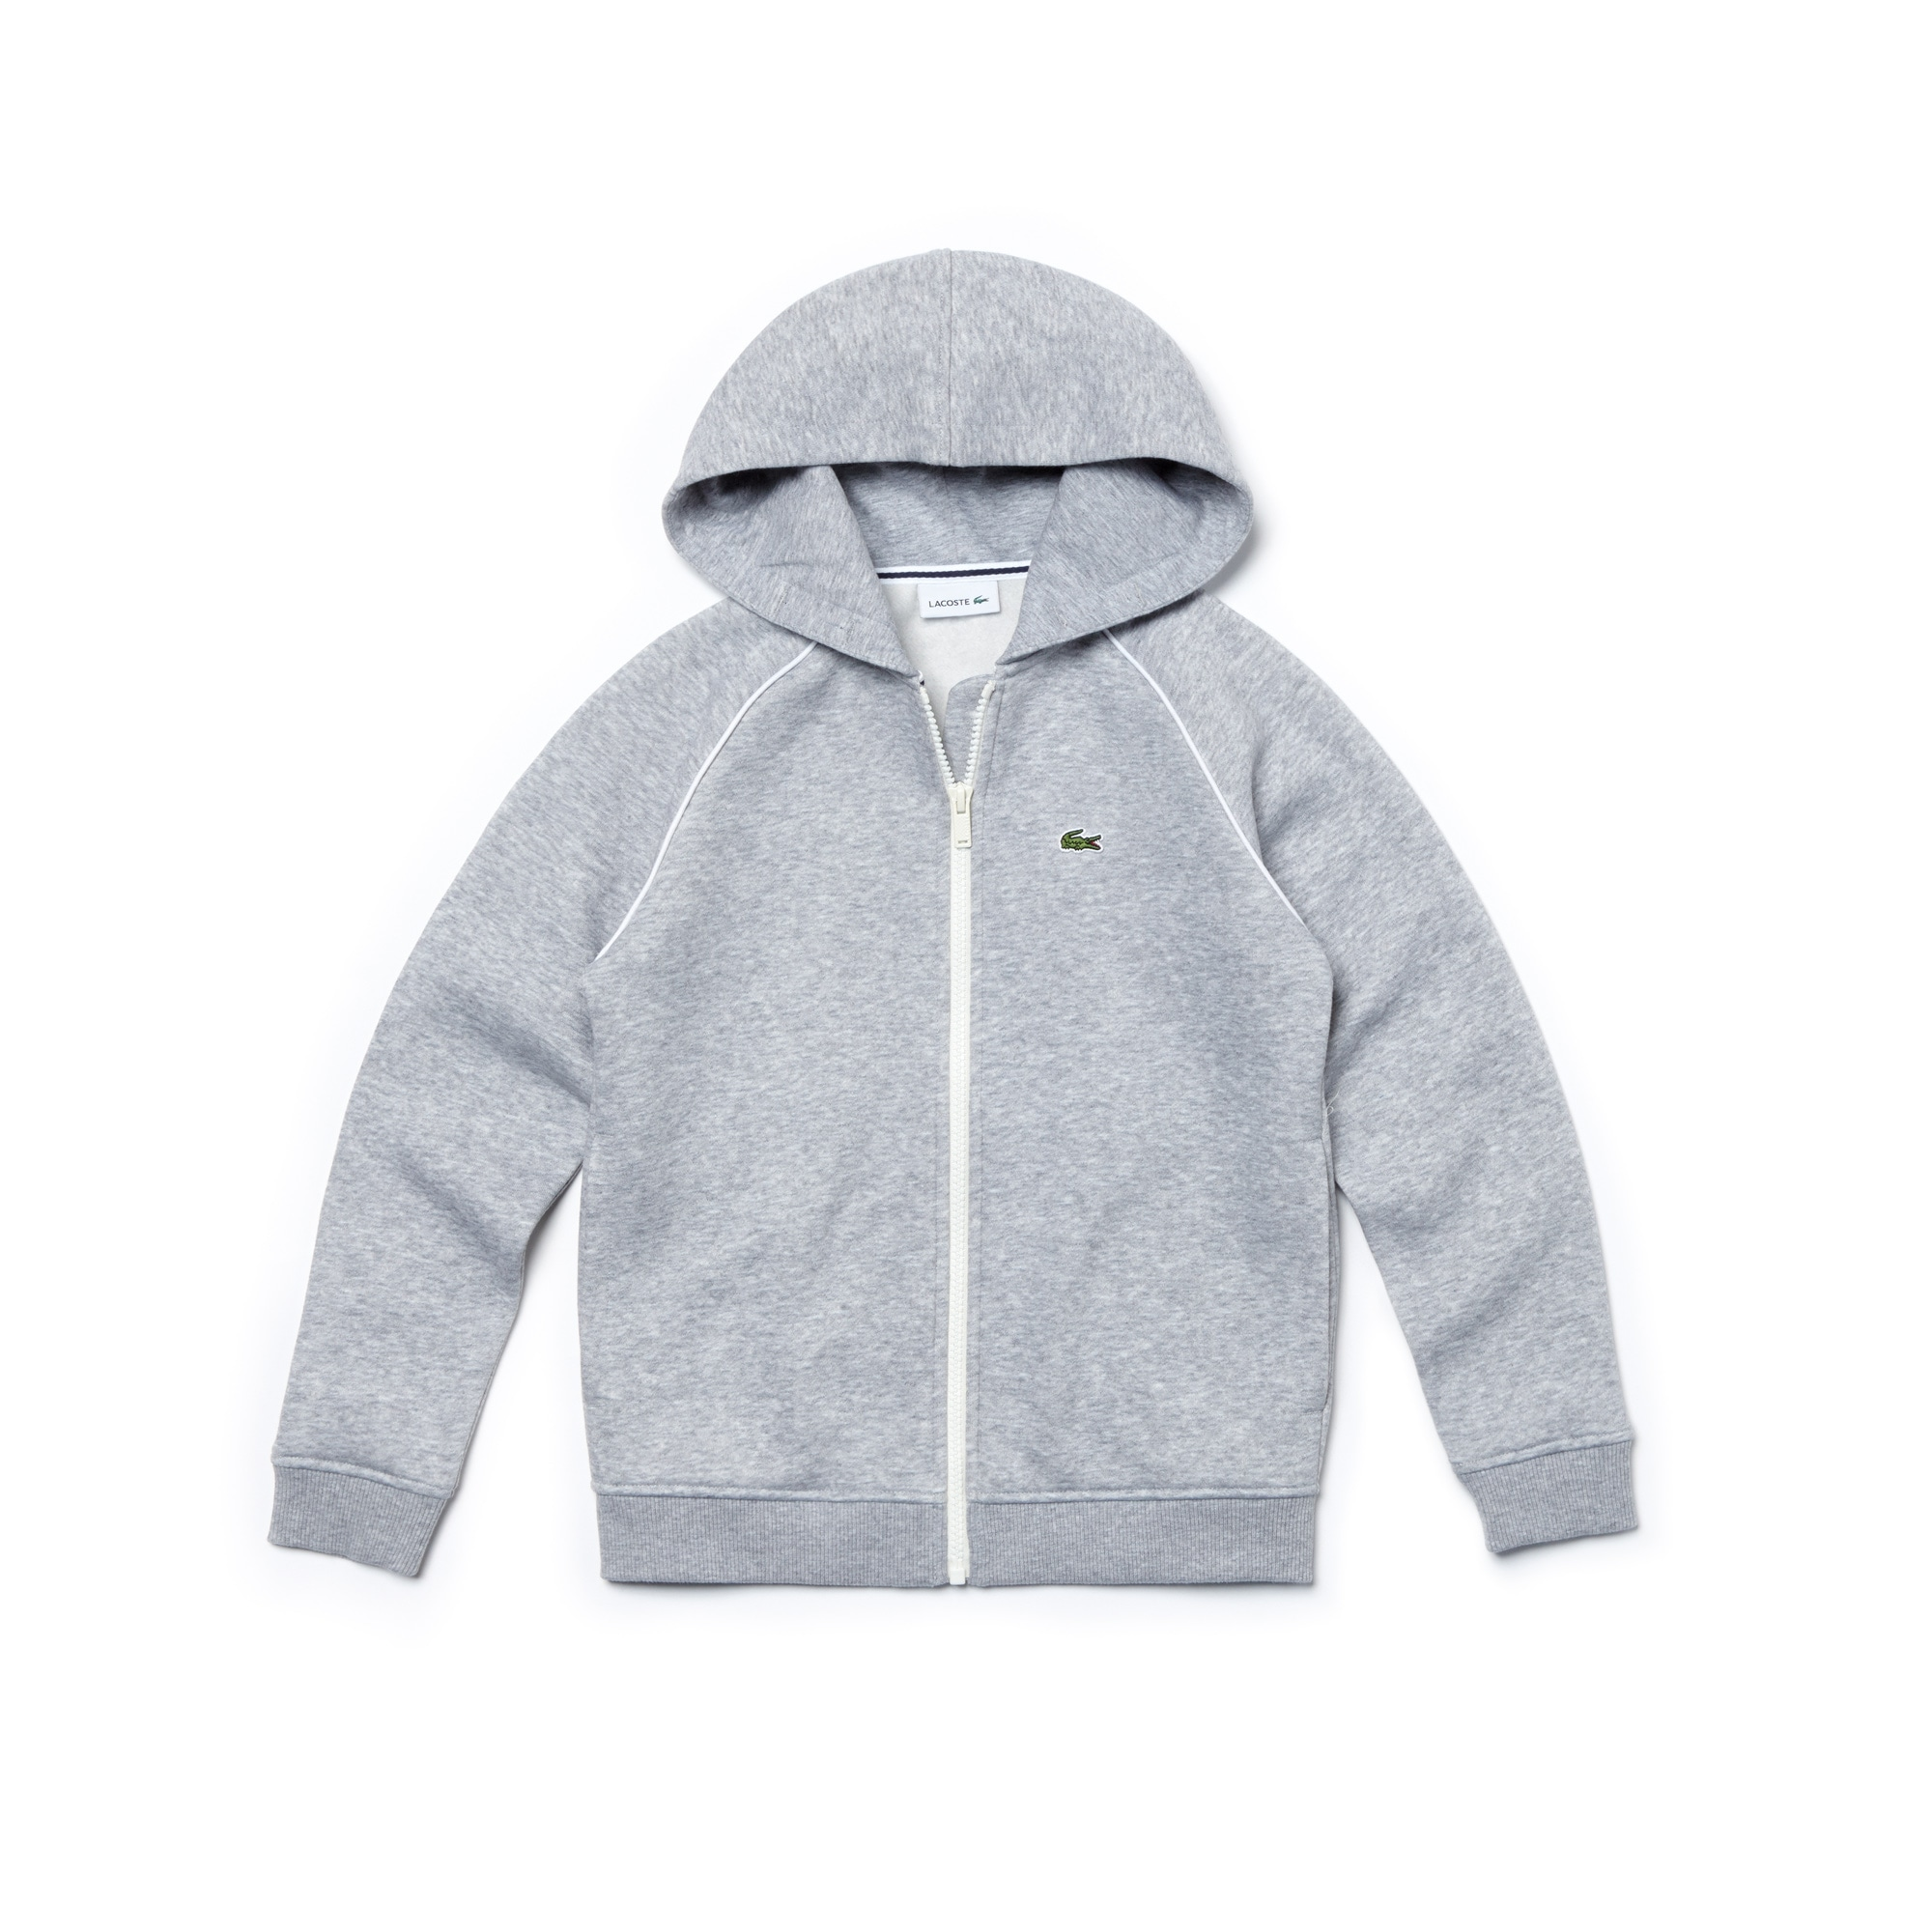 Boys' Hooded Piped Fleece Zip Sweatshirt